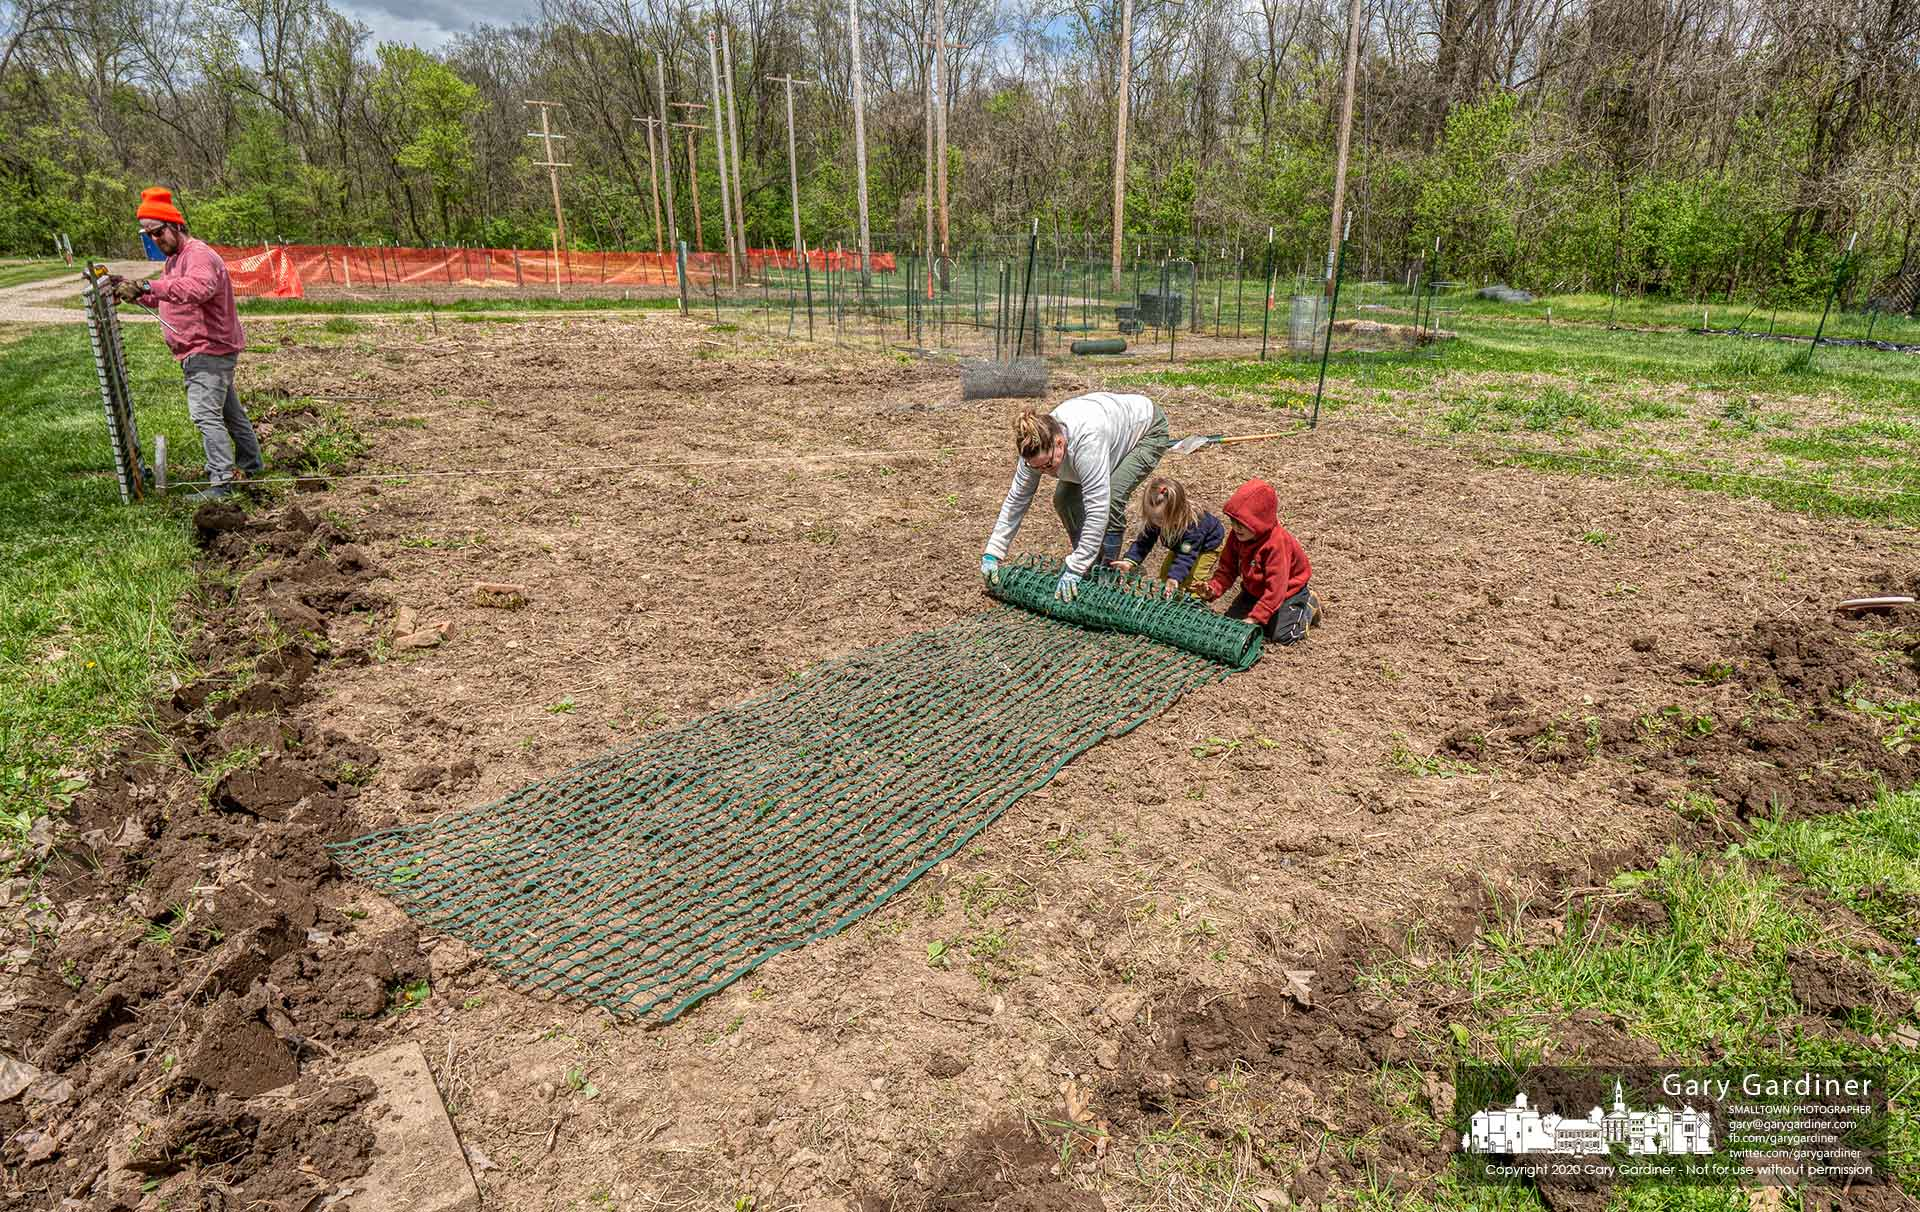 Mom and dad get a little assistance from their two children as they prepare their Westerville community garden plot for planting. My Final Photo for May 9, 2020.